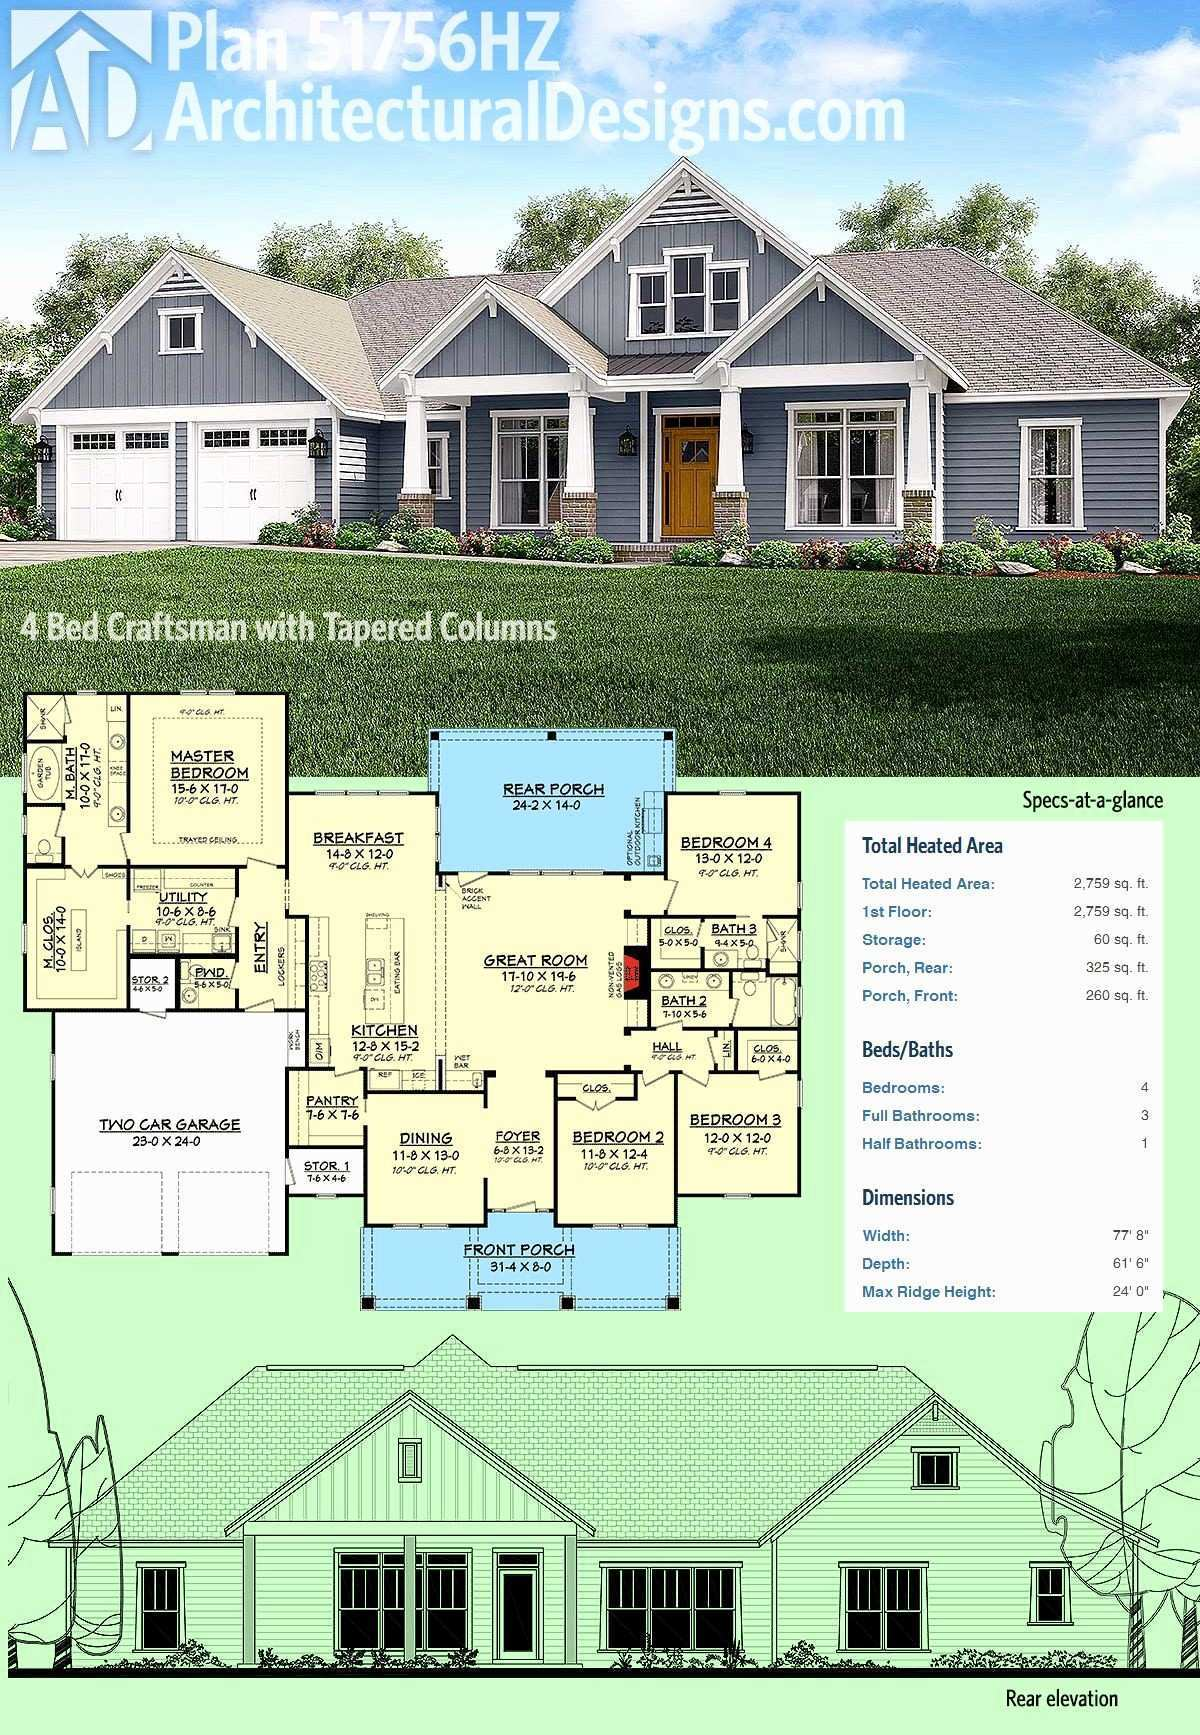 House Bed Frame Plans Long House Plans New House Plan Hdc 0d 27 is